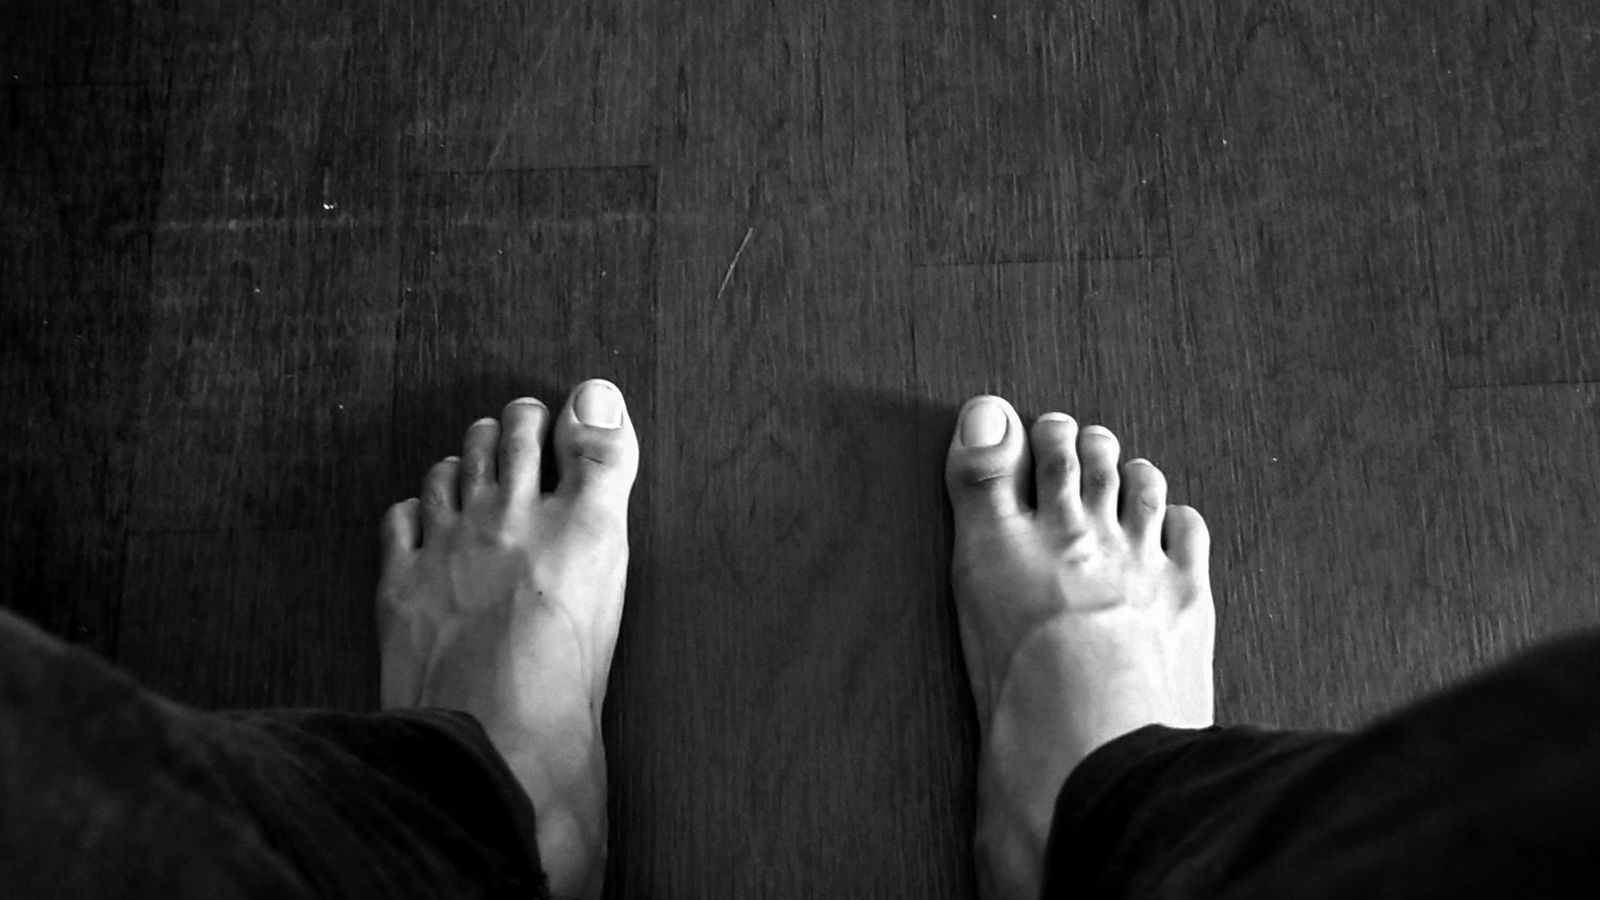 Image of 2 feet